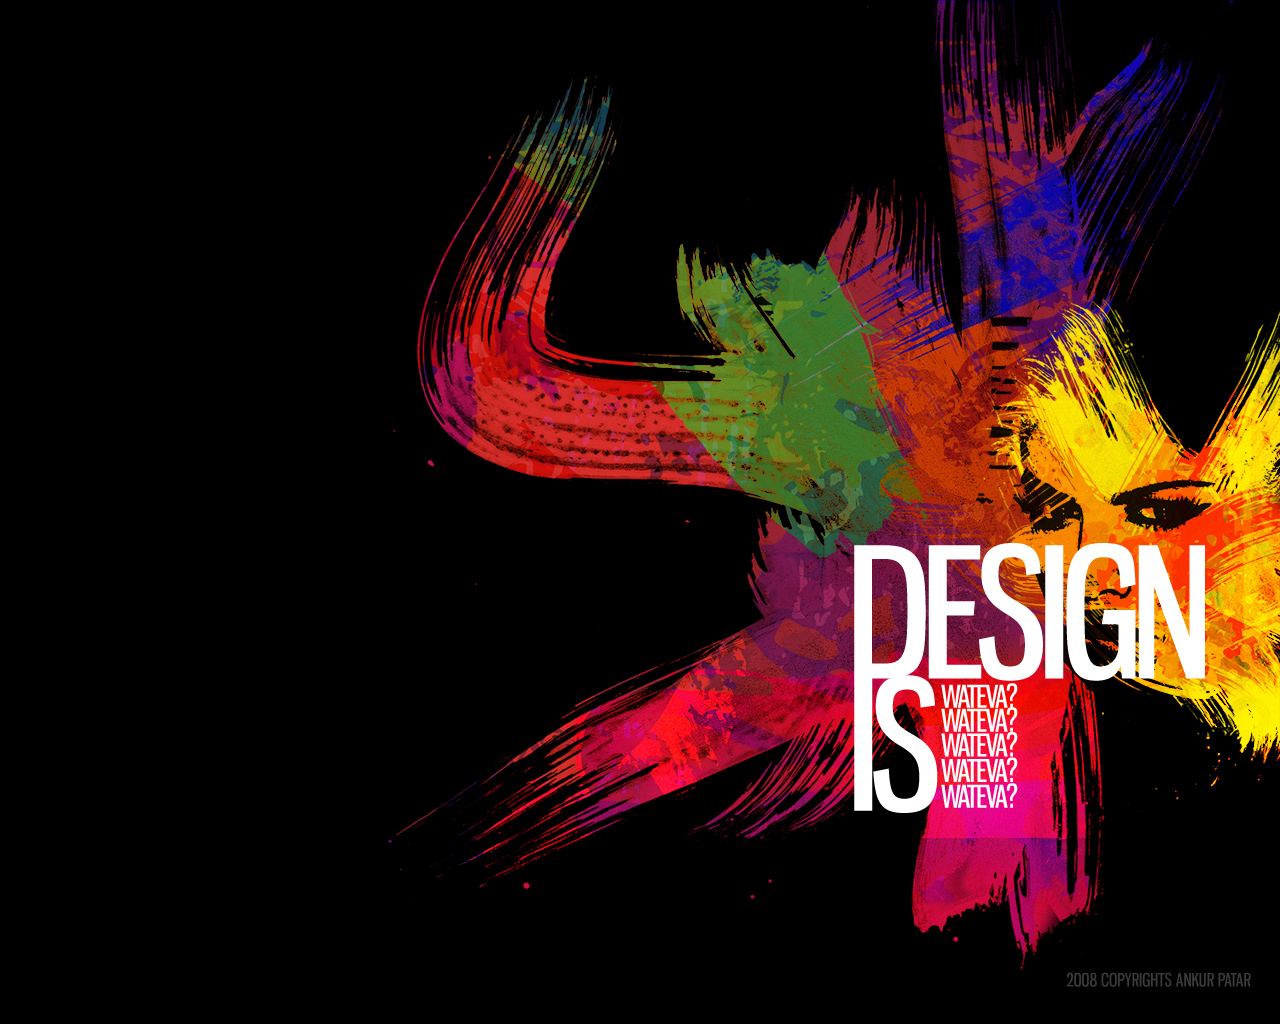 Graphic Design Wallpapers Cool Graphic Designs Invoice 1280x1024